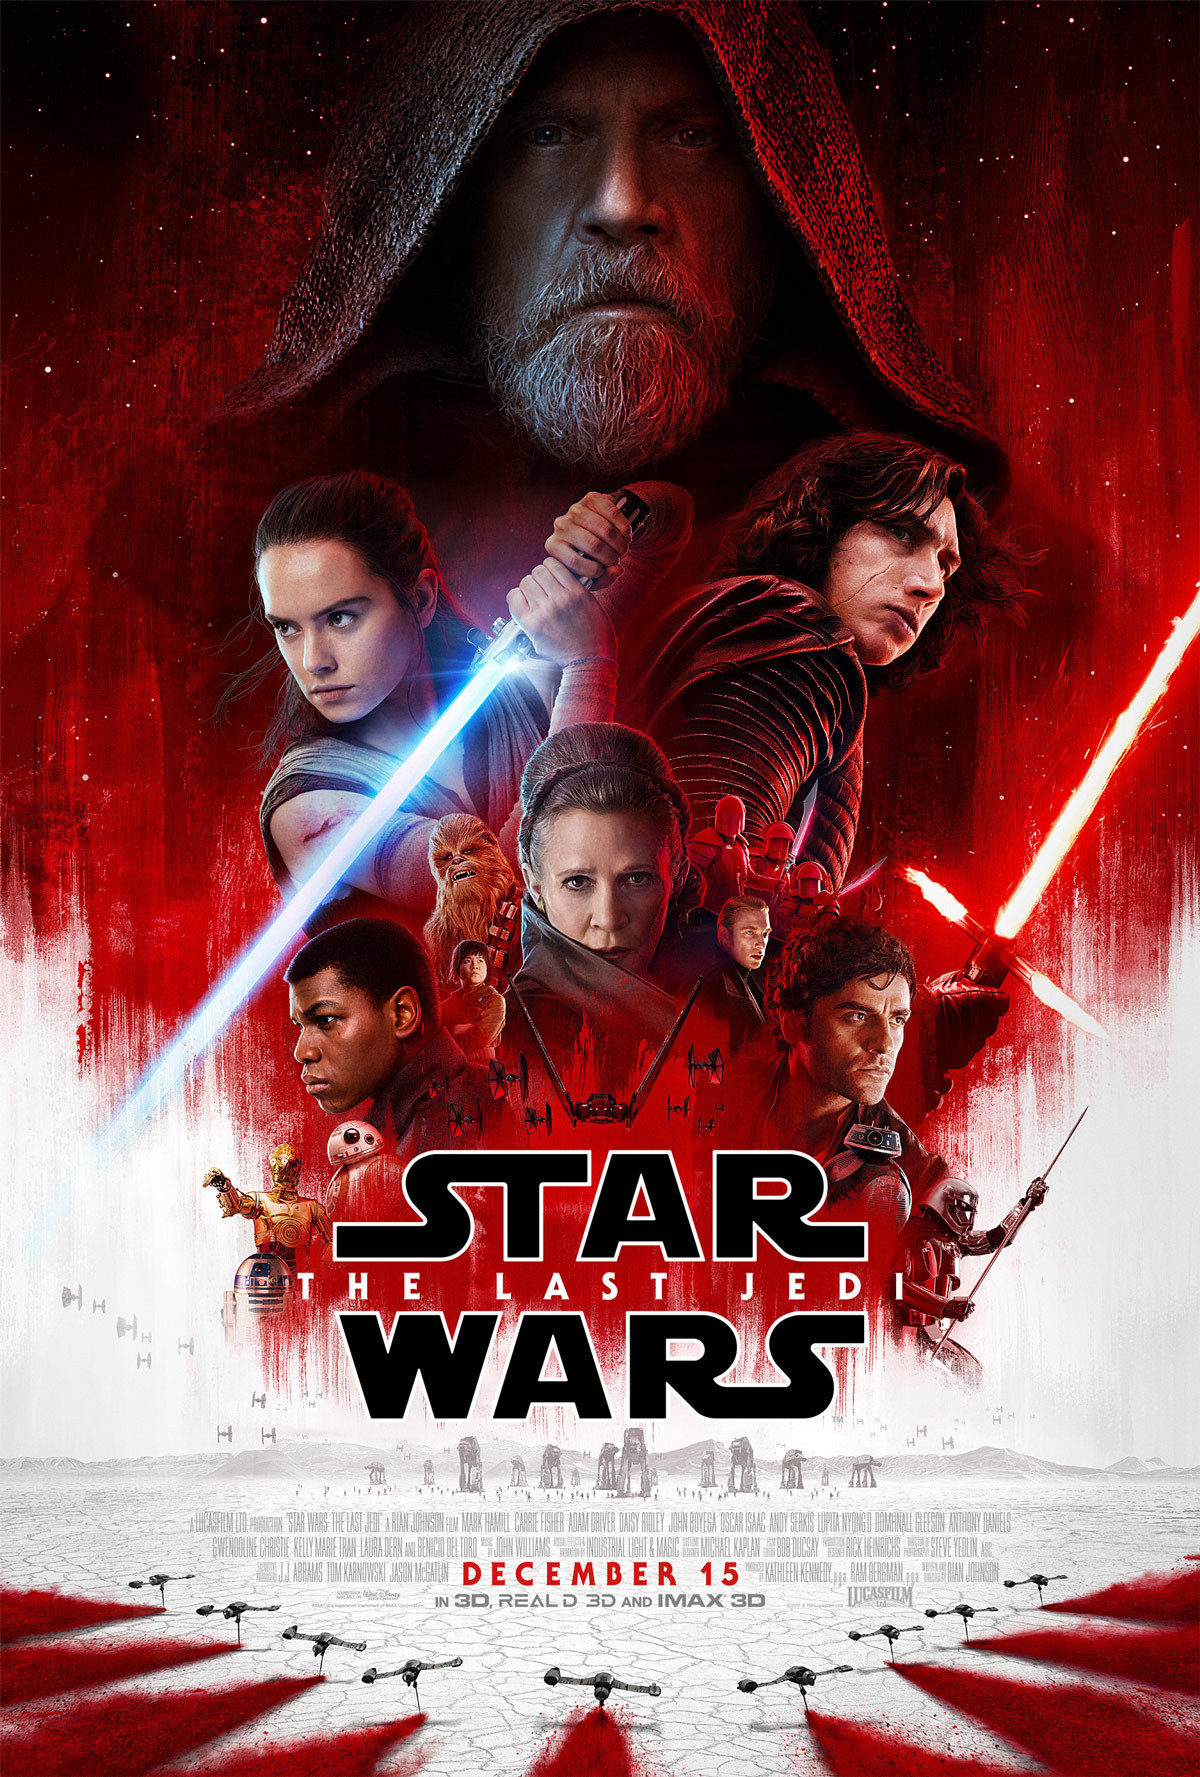 Why you might travel to a cinema far, far away to see Star Wars: The Last Jedi